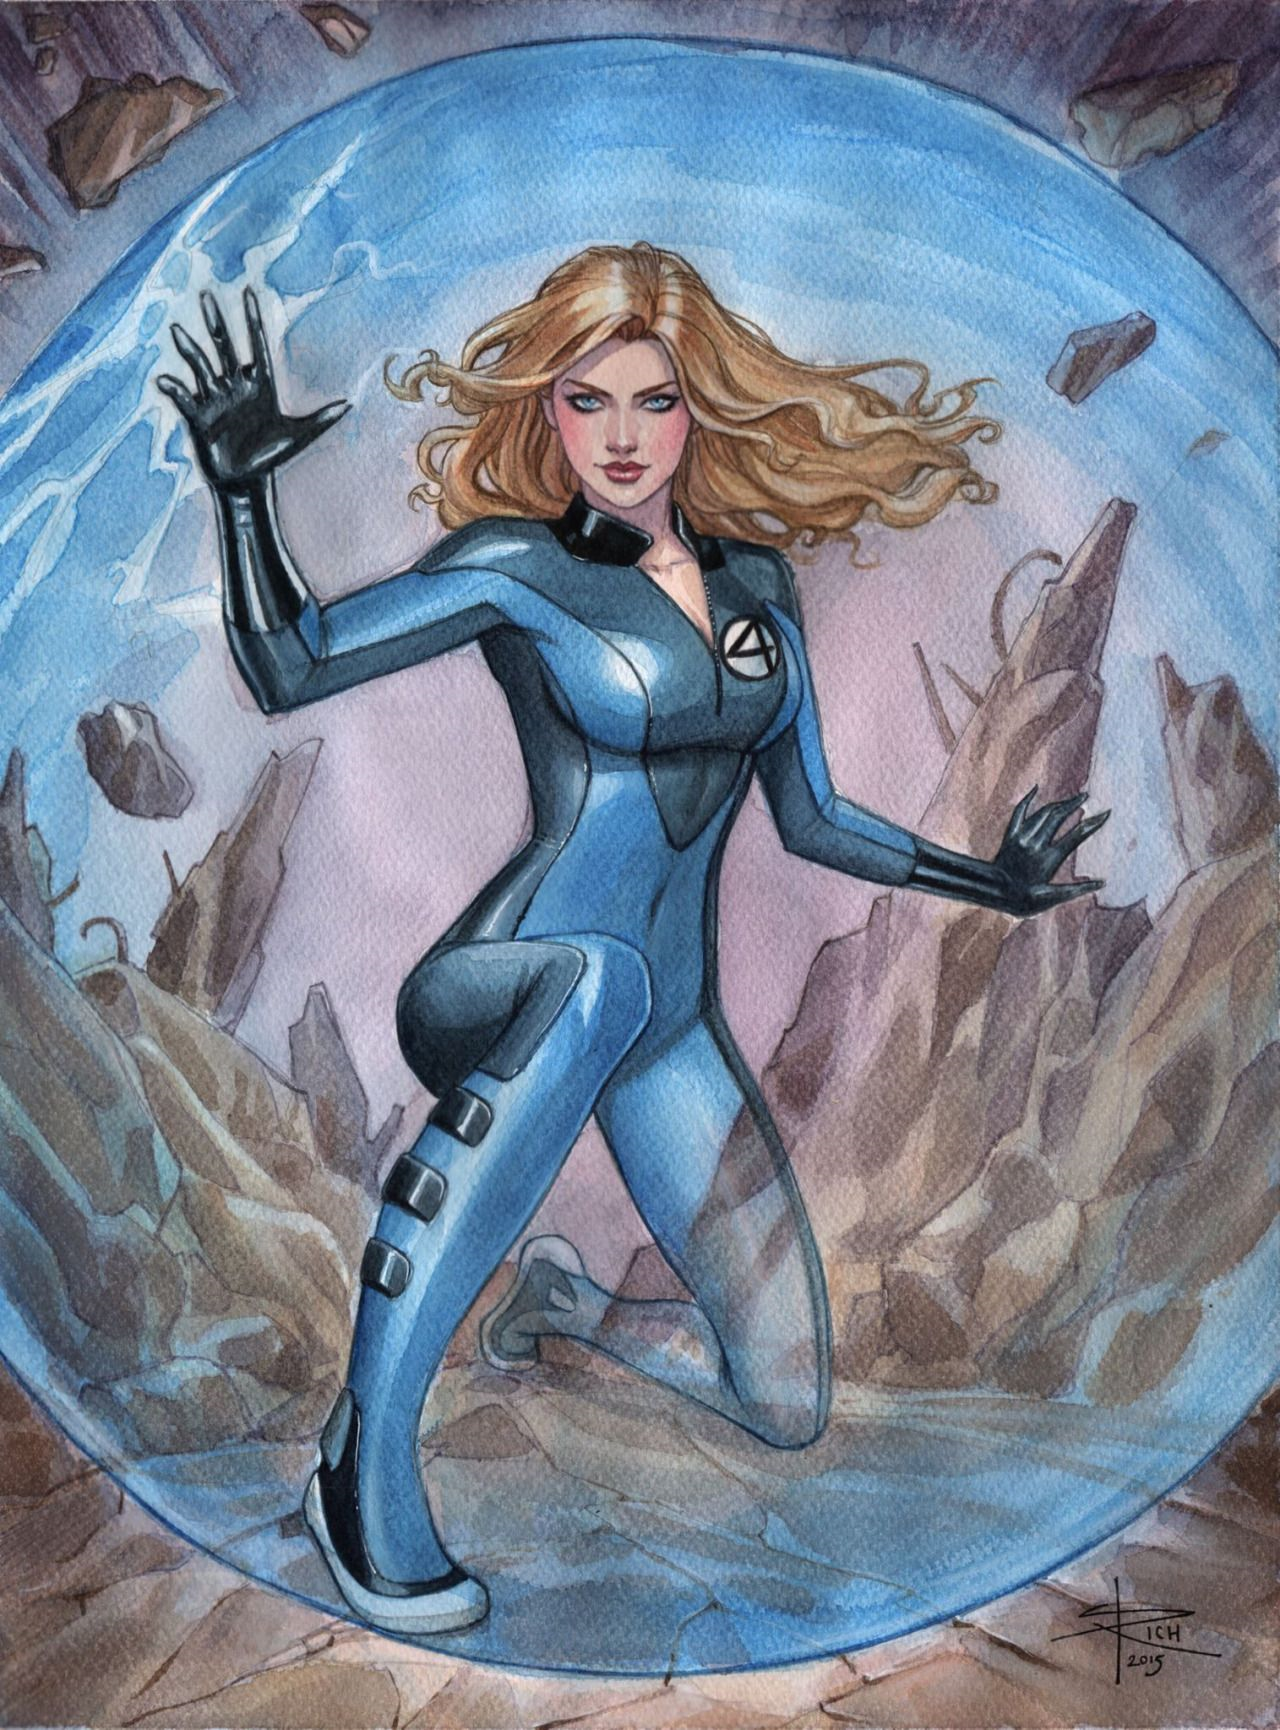 https://vignette.wikia.nocookie.net/powerlisting/images/8/82/Invisible_Woman_Barrier.png